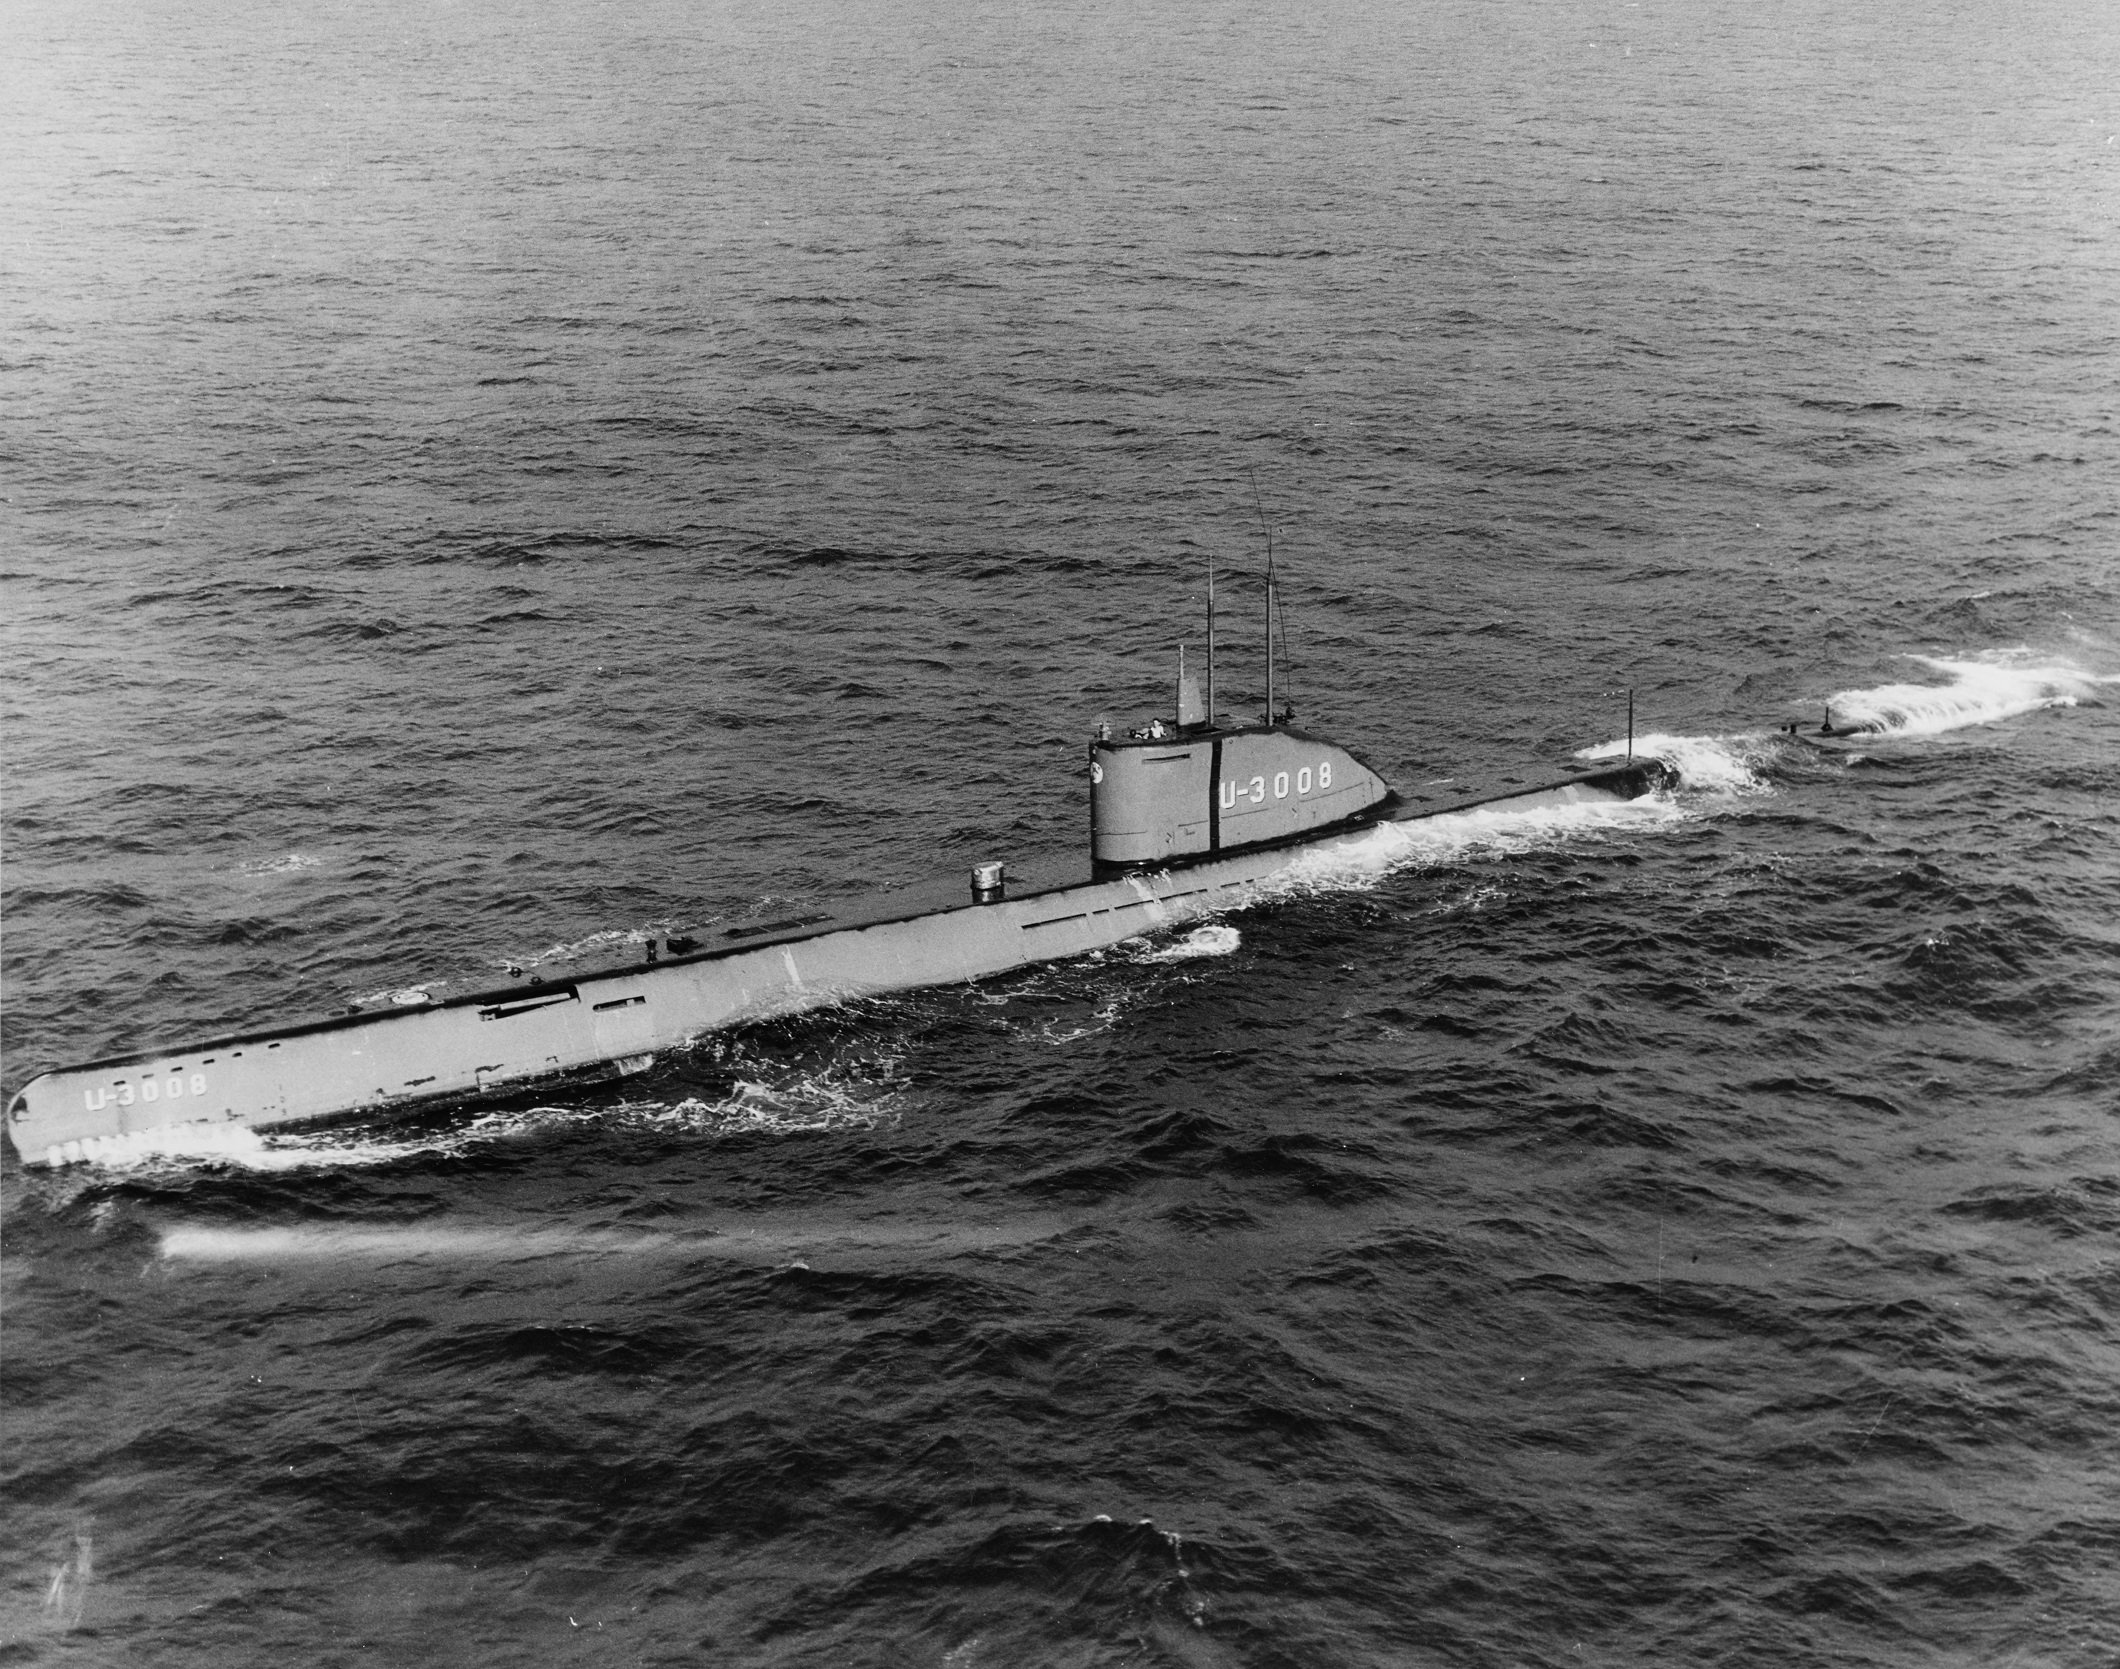 Hitler Built A World War Ii Submarine That Was Revolutionary It Ended Up A Total Failure